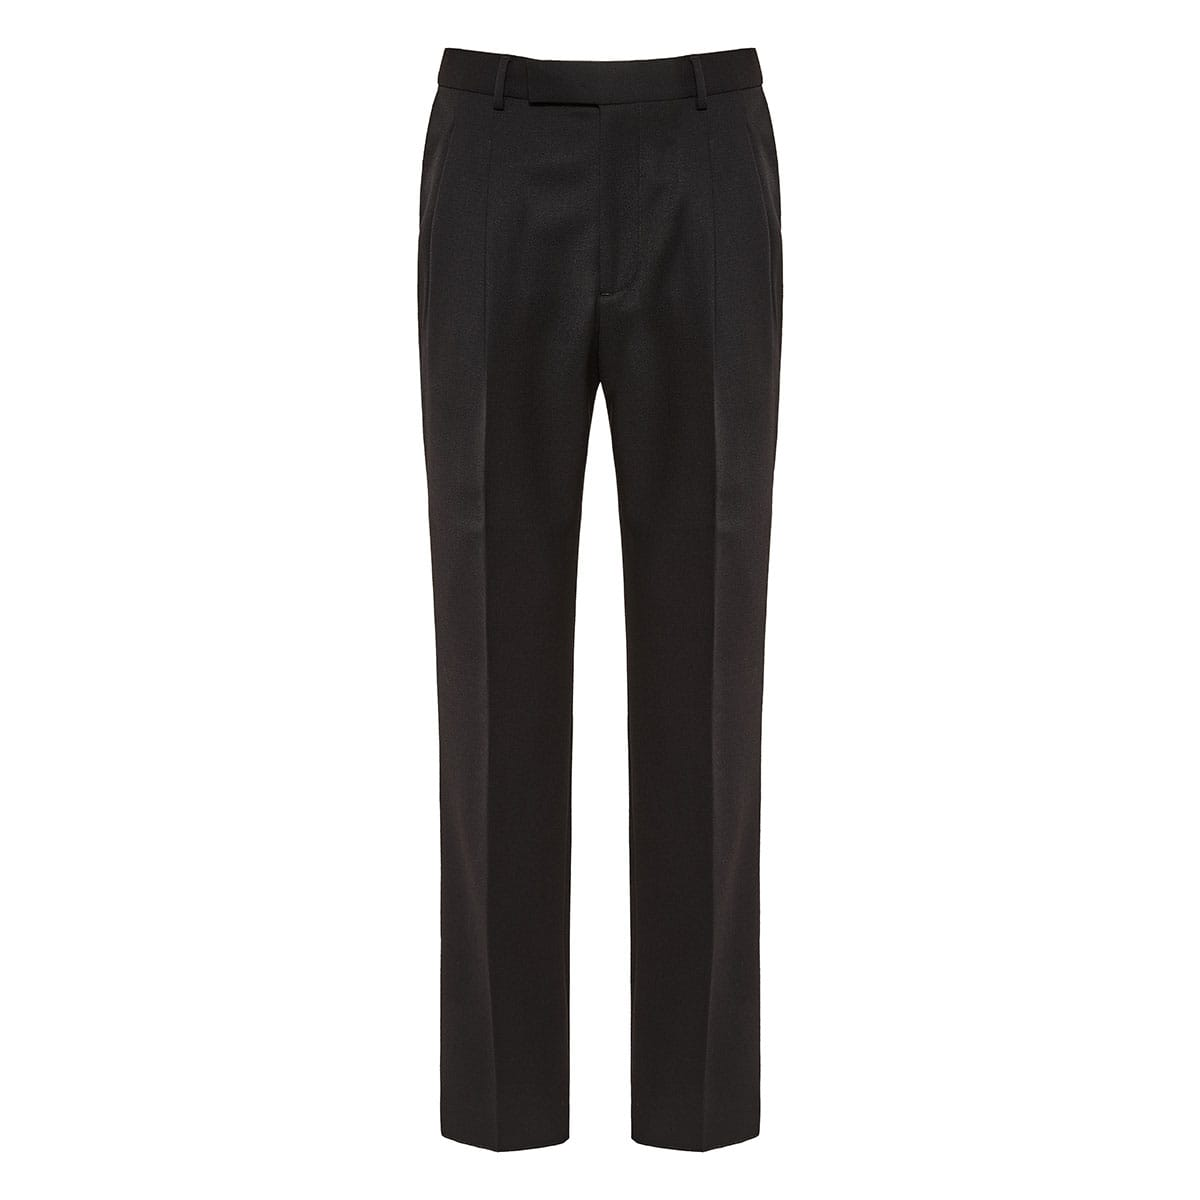 Darted tailored trousers